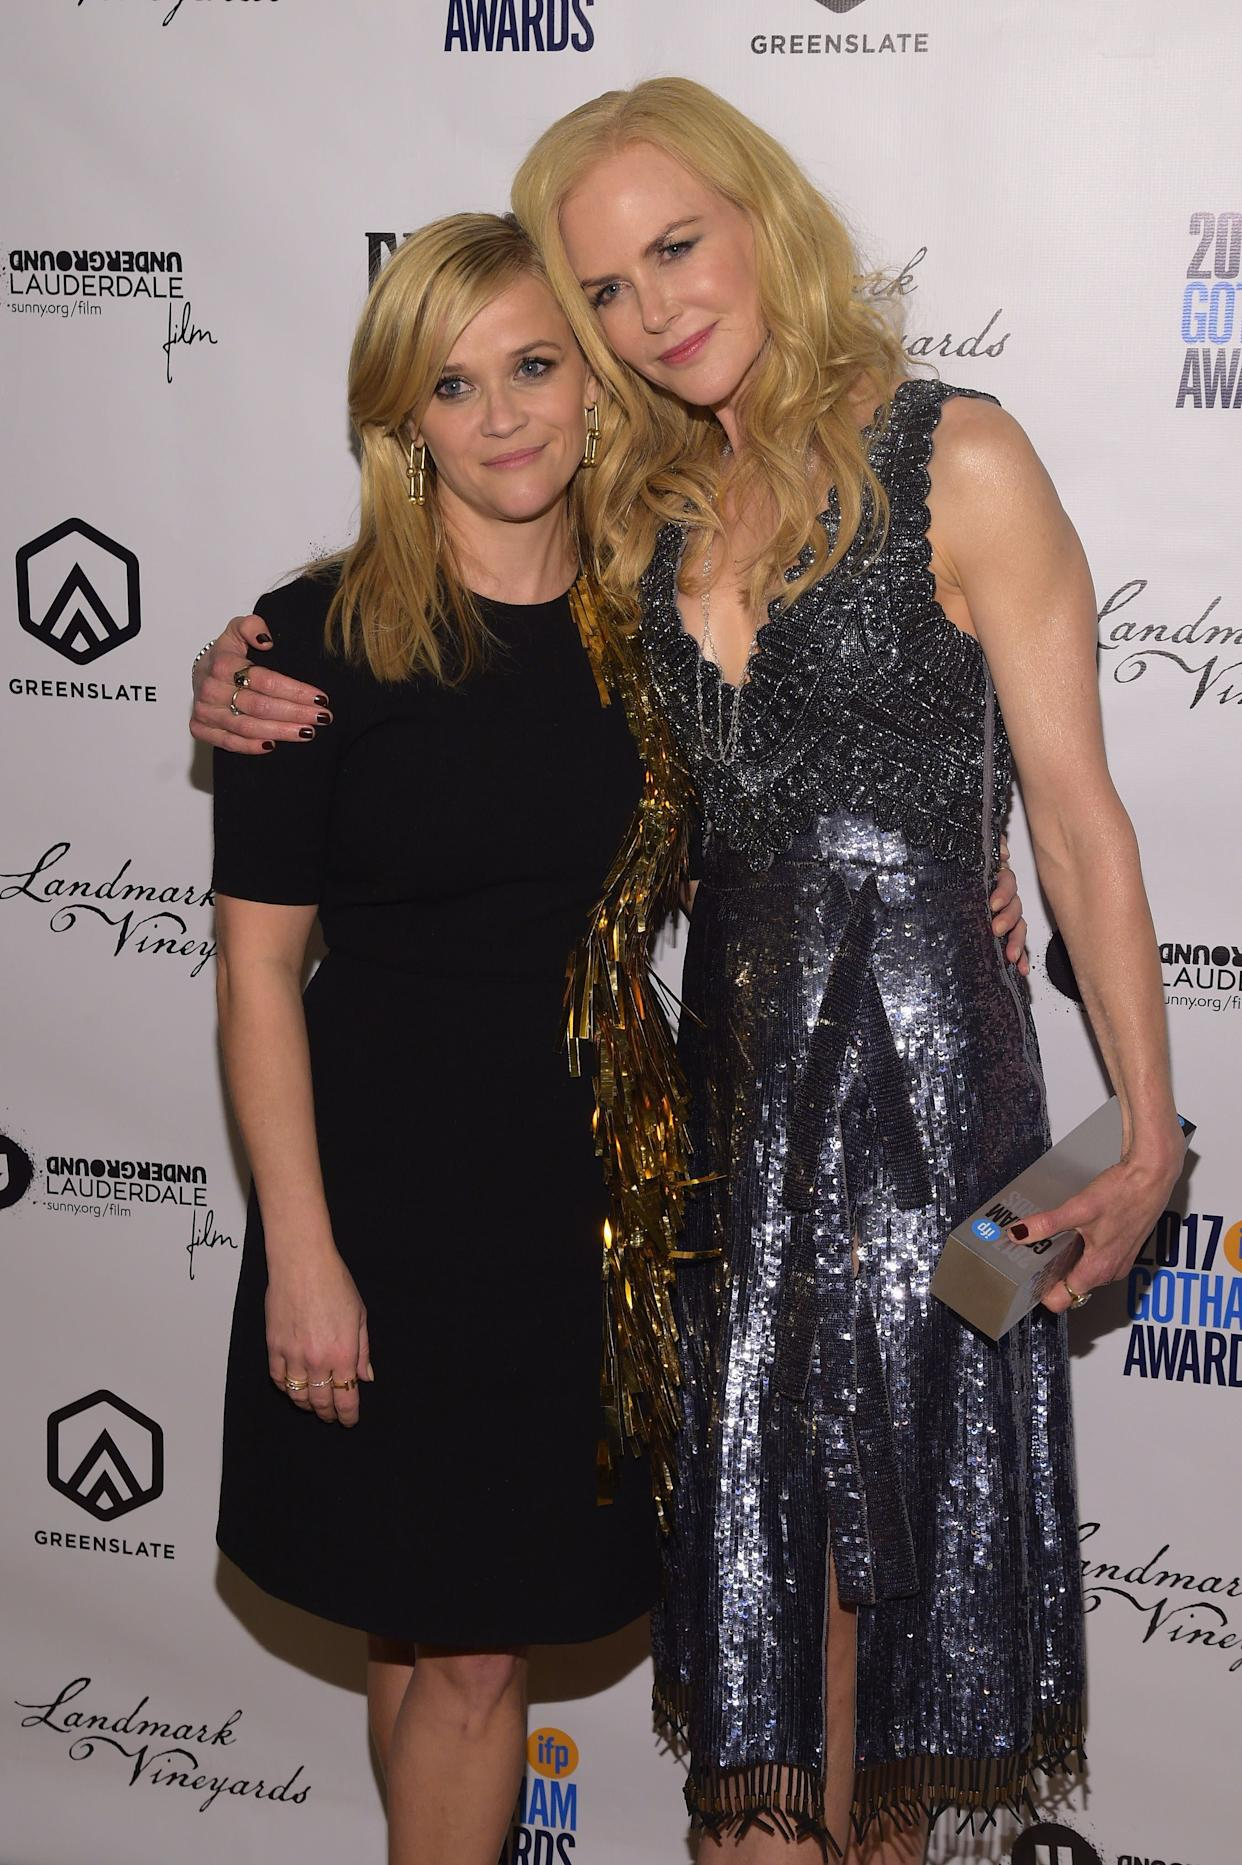 NEW YORK, NY - NOVEMBER 27: Reese Witherspoon and Nicole Kidman attend the GreenSlate Greenroom at The 2017 Gotham Awards at Cipriani Wall Street on November 27, 2017 in New York City. (Photo by Jason Kempin/Getty Images for GreenSlate)